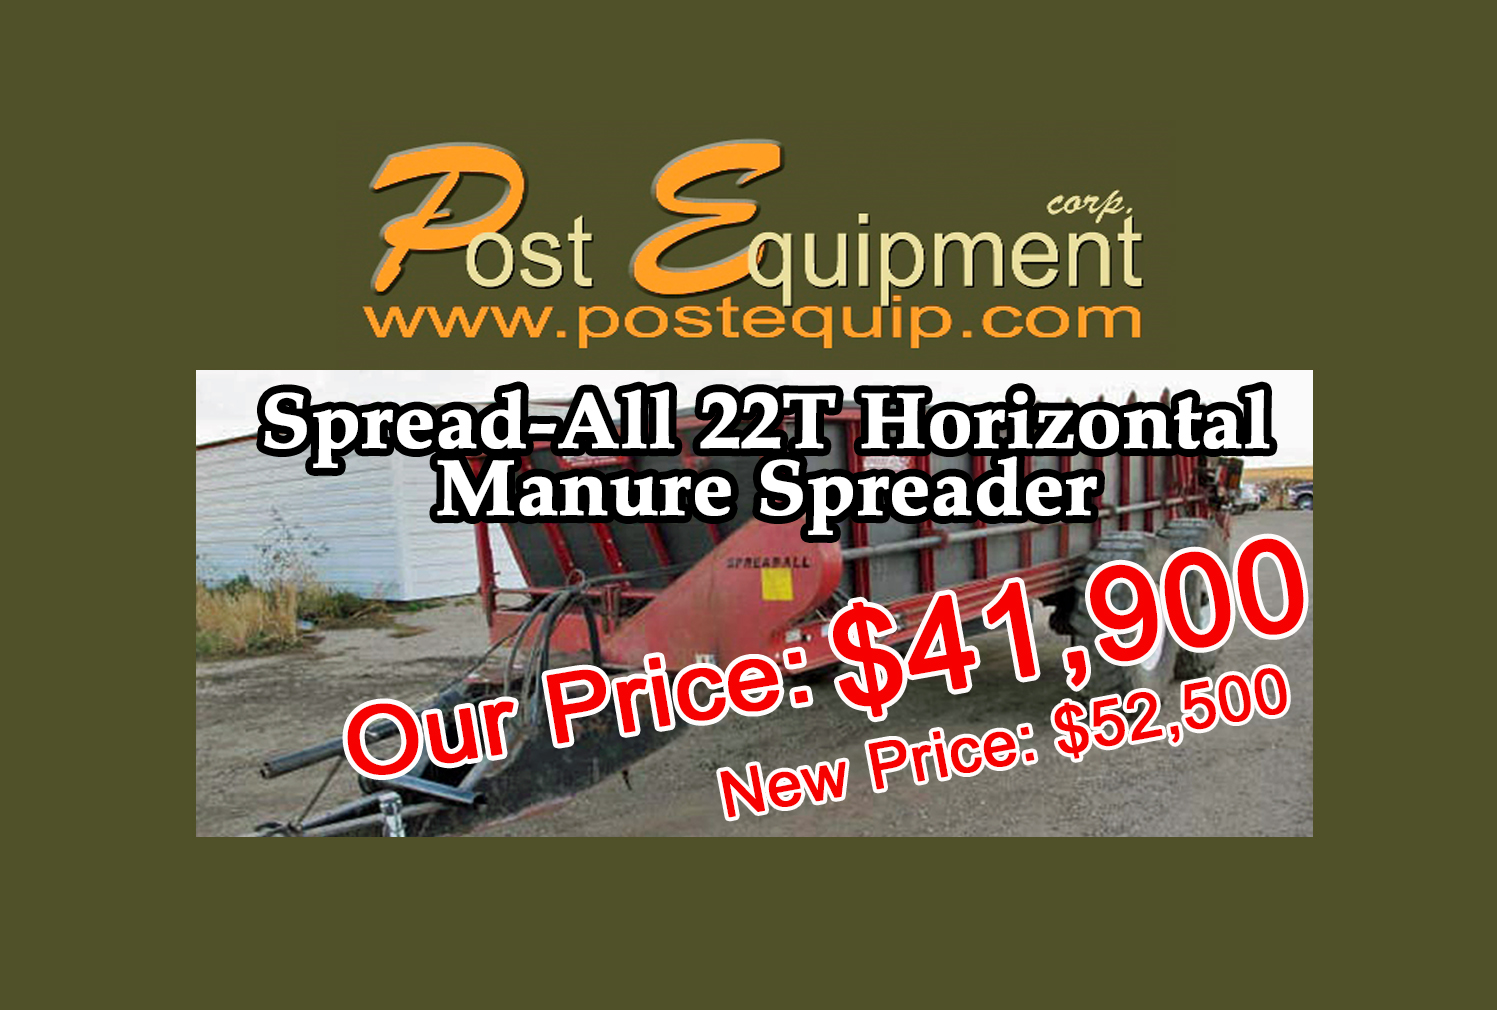 Spread-Alll Manure Spreader for sale - GREAT DEAL!